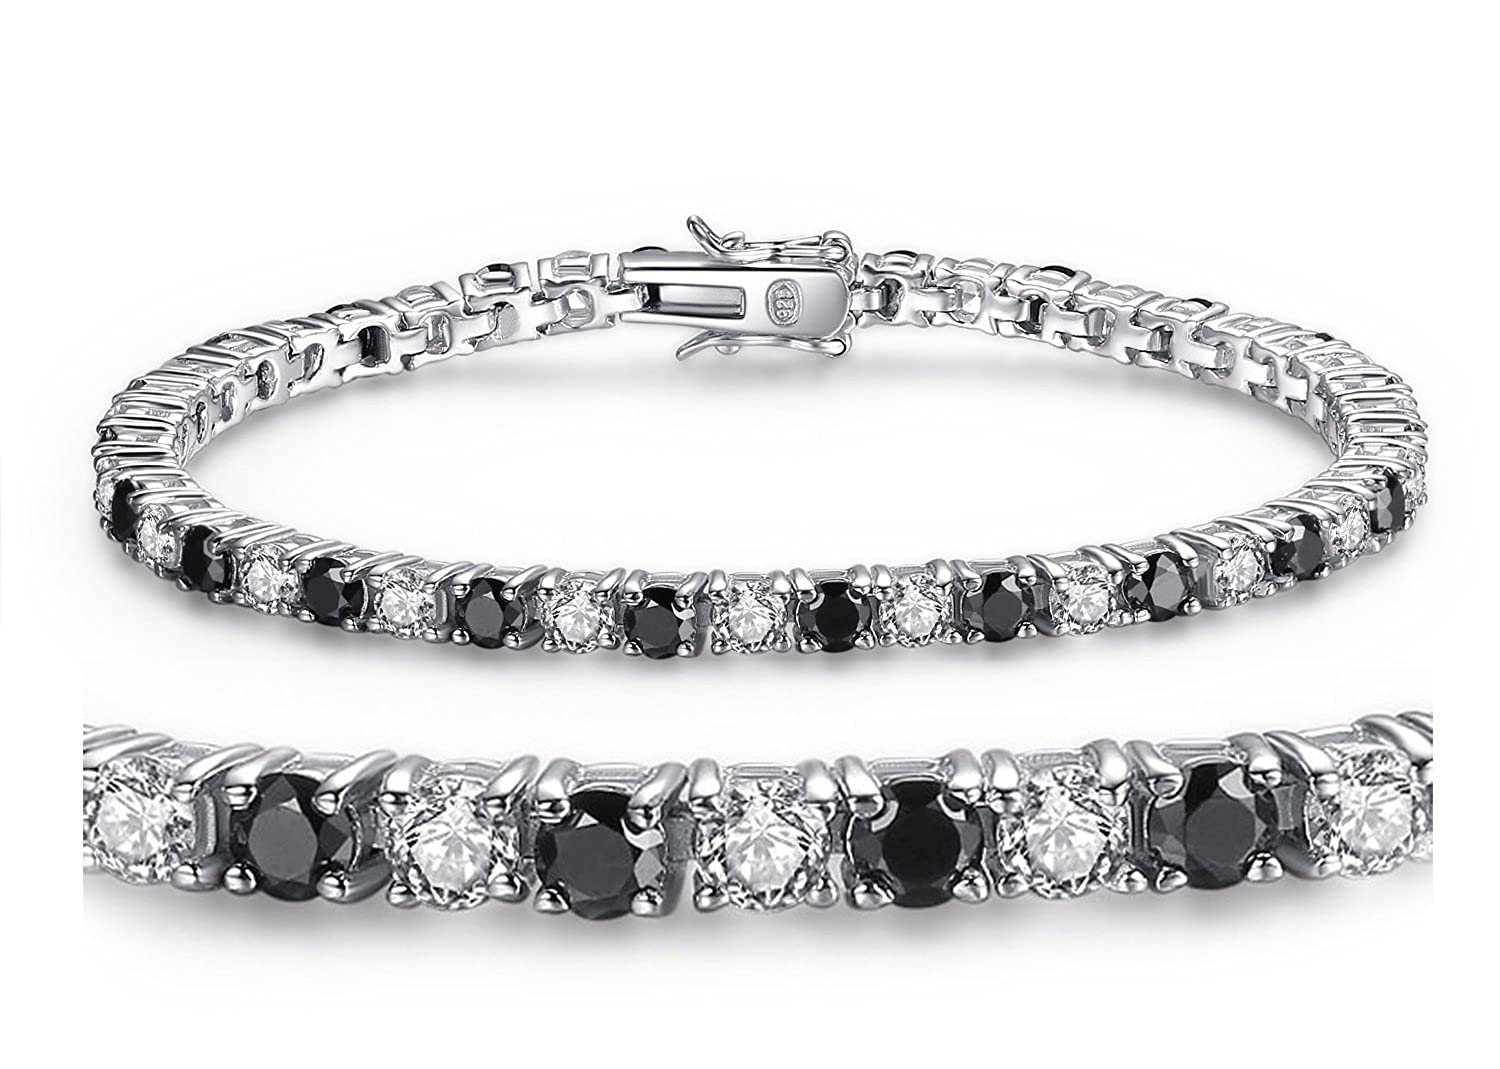 MABELLA Sterling Silver Black & White Round Cut Cubic Zirconia Tennis Gem. Bracelet 7